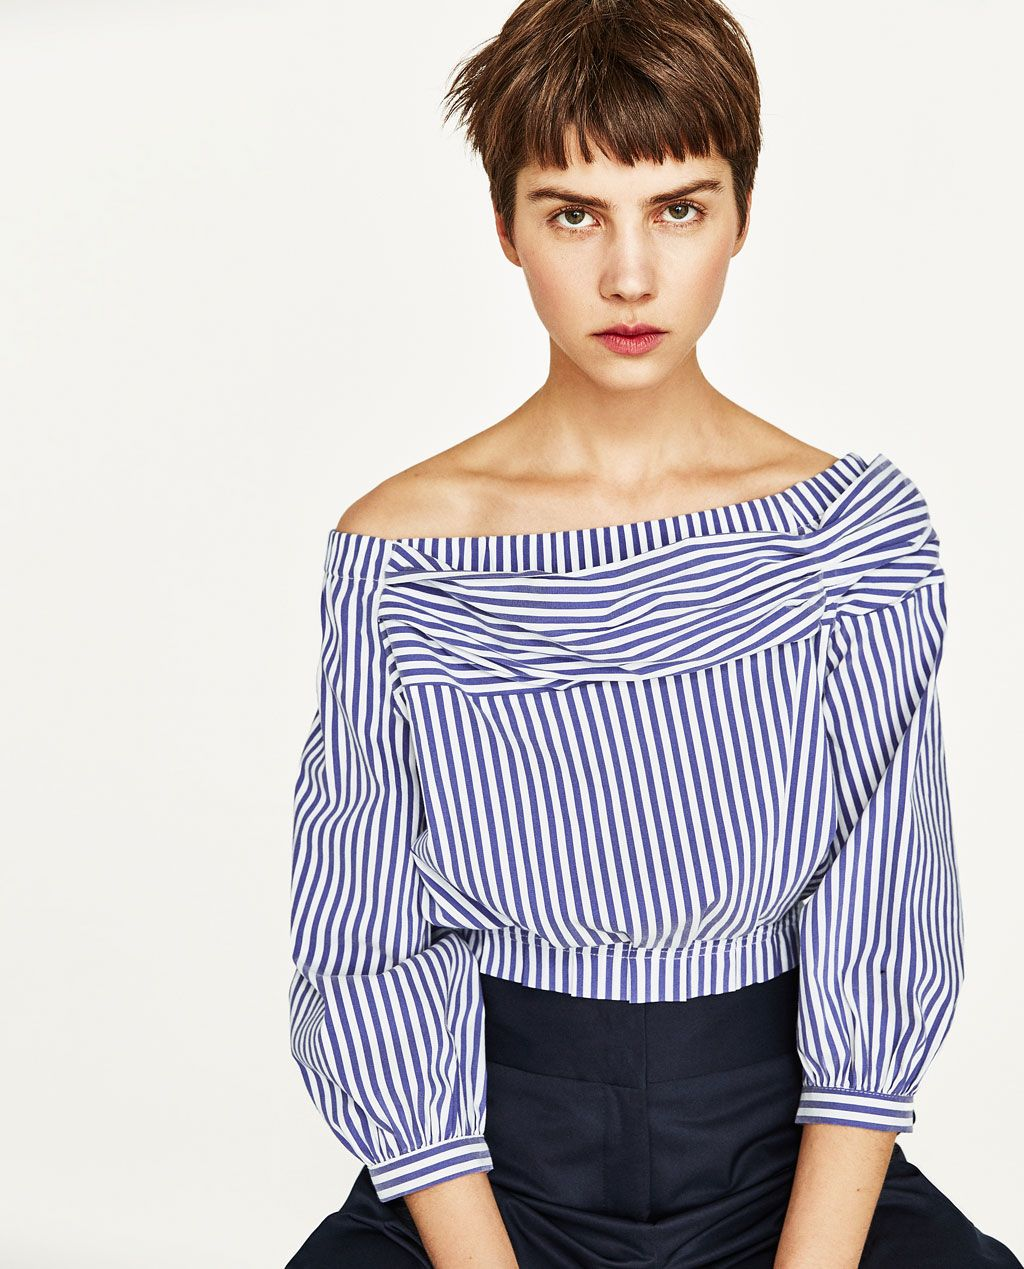 77c07af50 i love stripes and the blouse-y nature of this top. love the slight hint of  exposed shoulders. OFF-THE-SHOULDER STRIPED BLOUSE-View All-TOPS-WOMAN